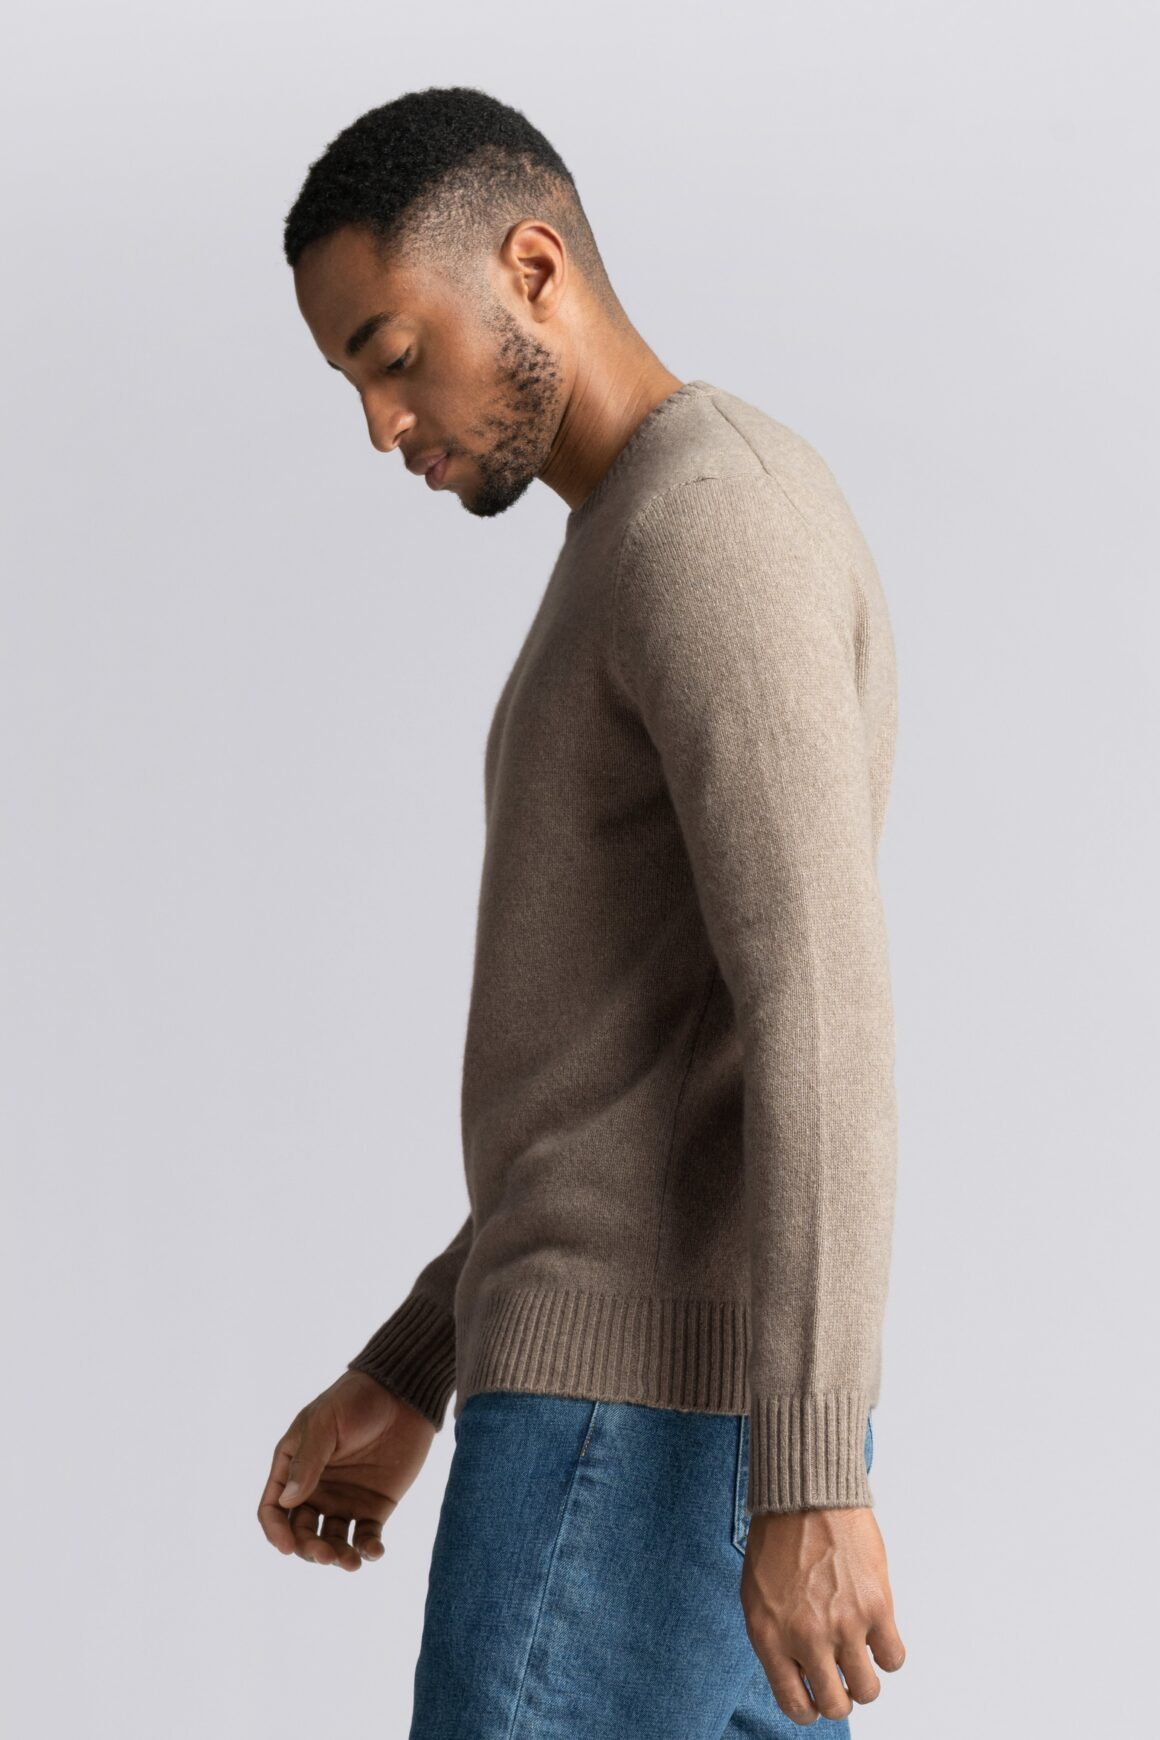 Buy Less, Shop Sustainably - ASKET Cashmere Sweater Clothing